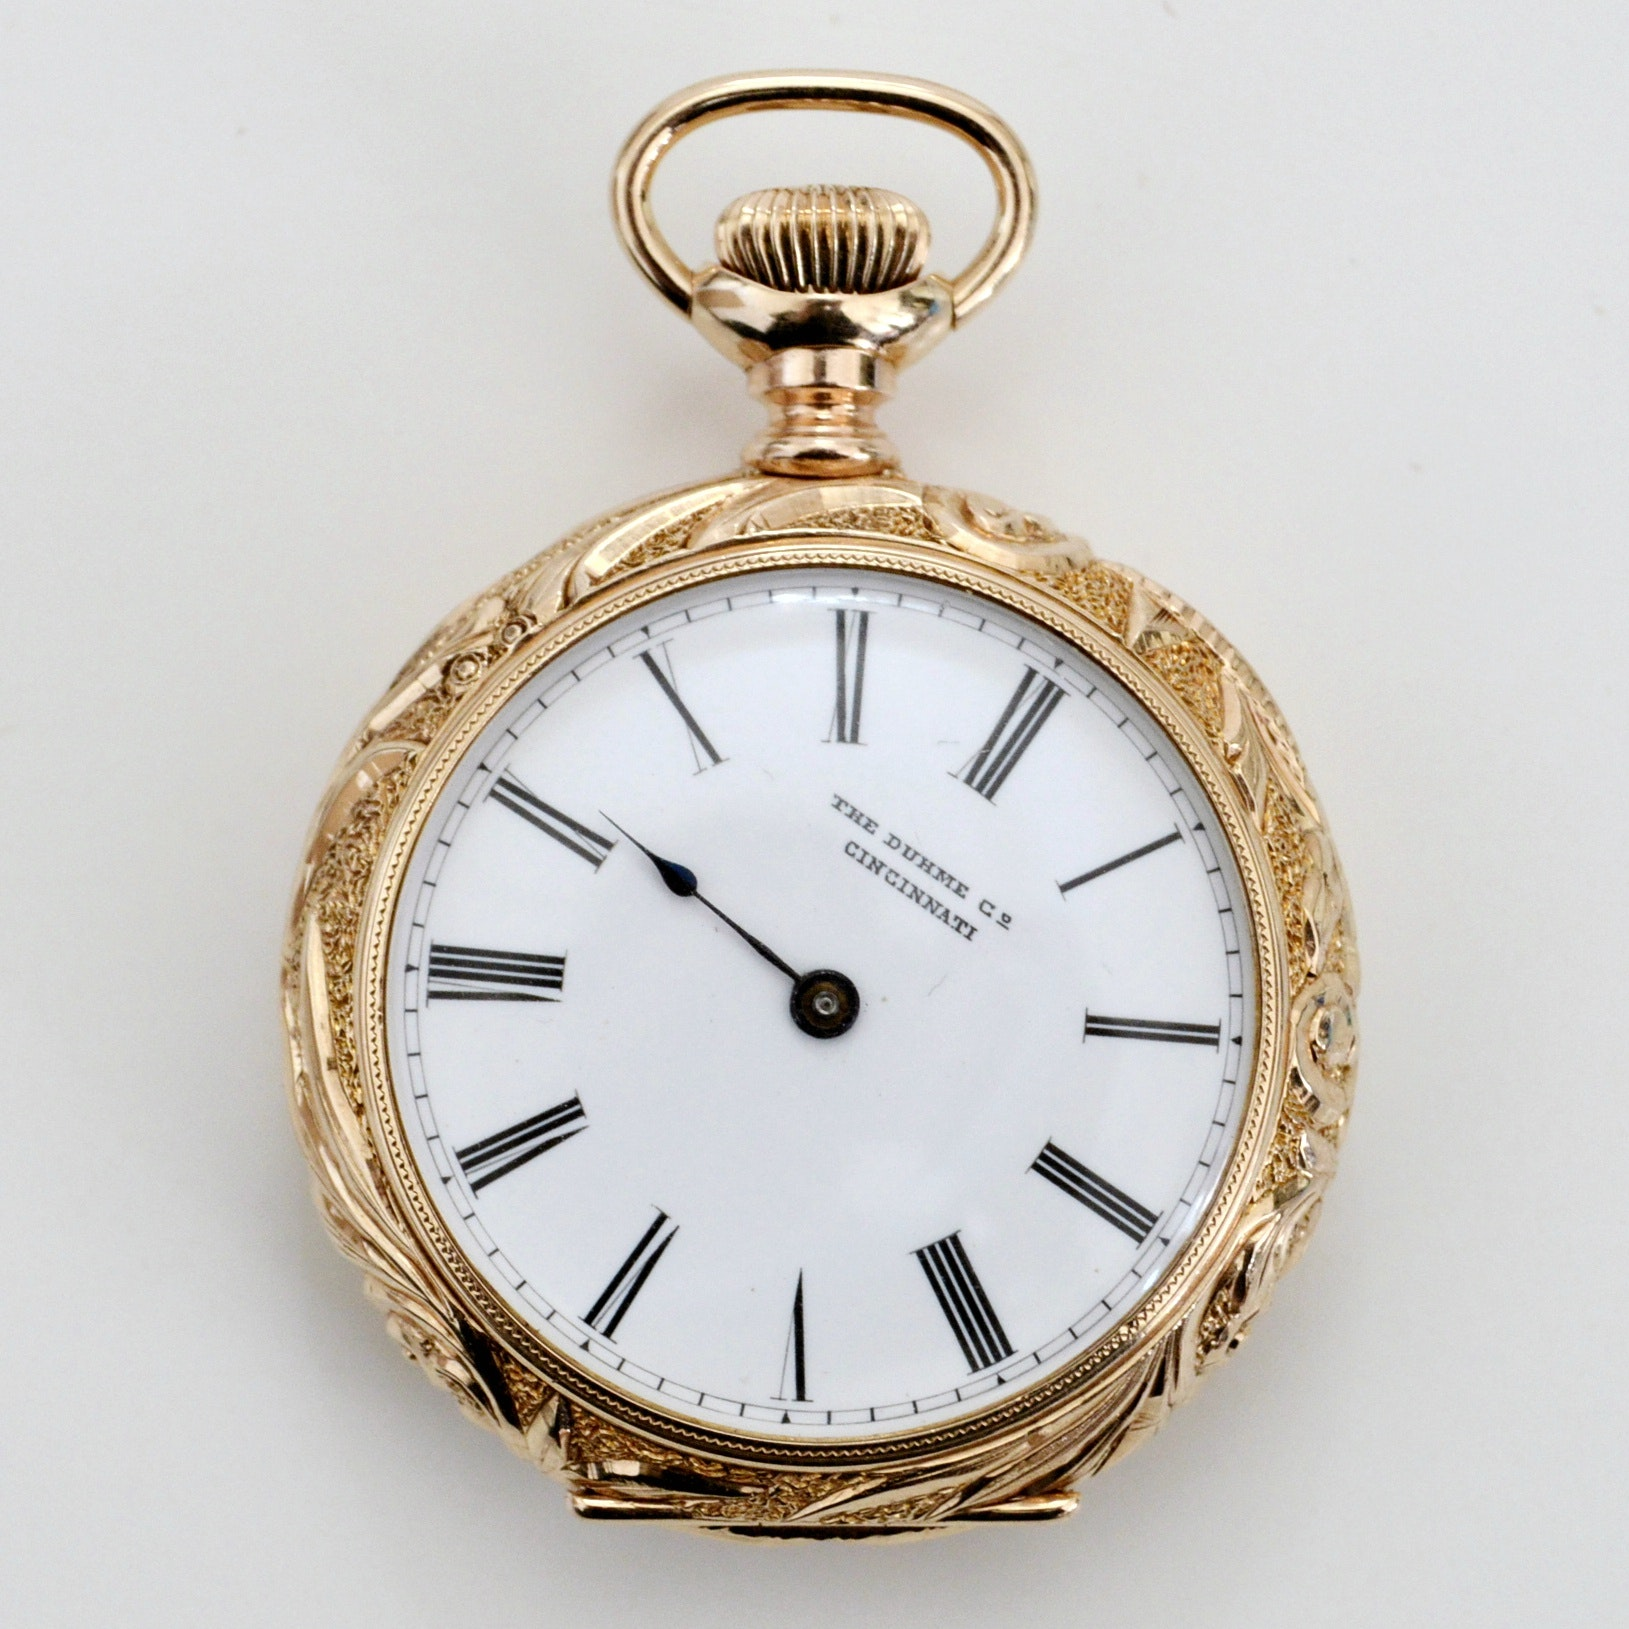 Patek Philippe and The Duhme Co. 14K Yellow Gold Pocket Watch